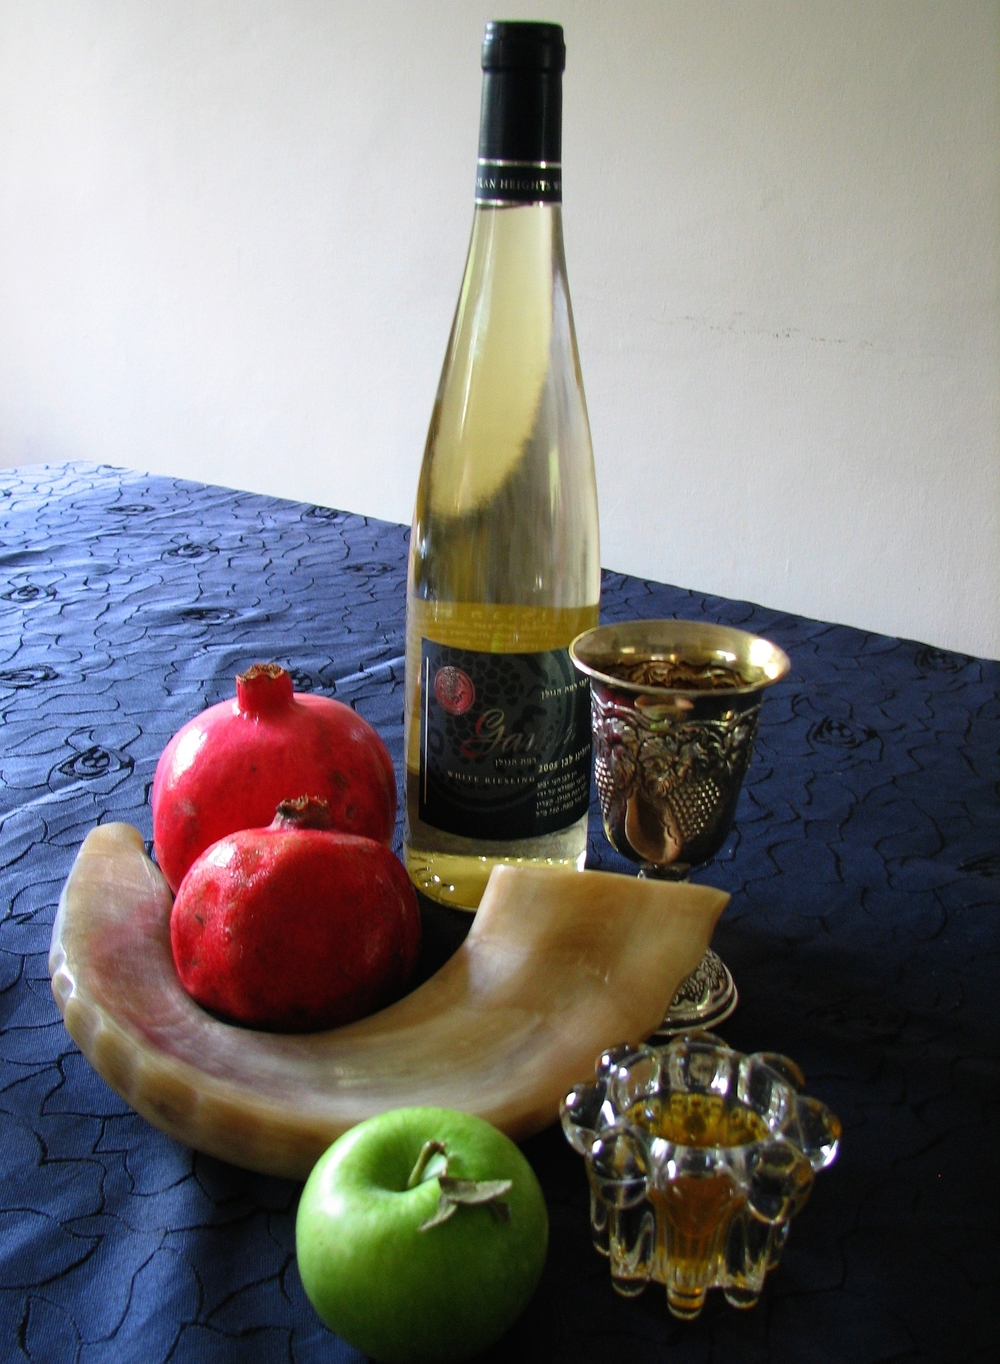 Click photo to download. Caption: Symbols of Rosh Hashanah, the Jewish New Year, including the shofar, an apple and honey, pomegranates, wine, and a silver Kiddush cup. Credit: Gilabrand via Wikimedia Commons.